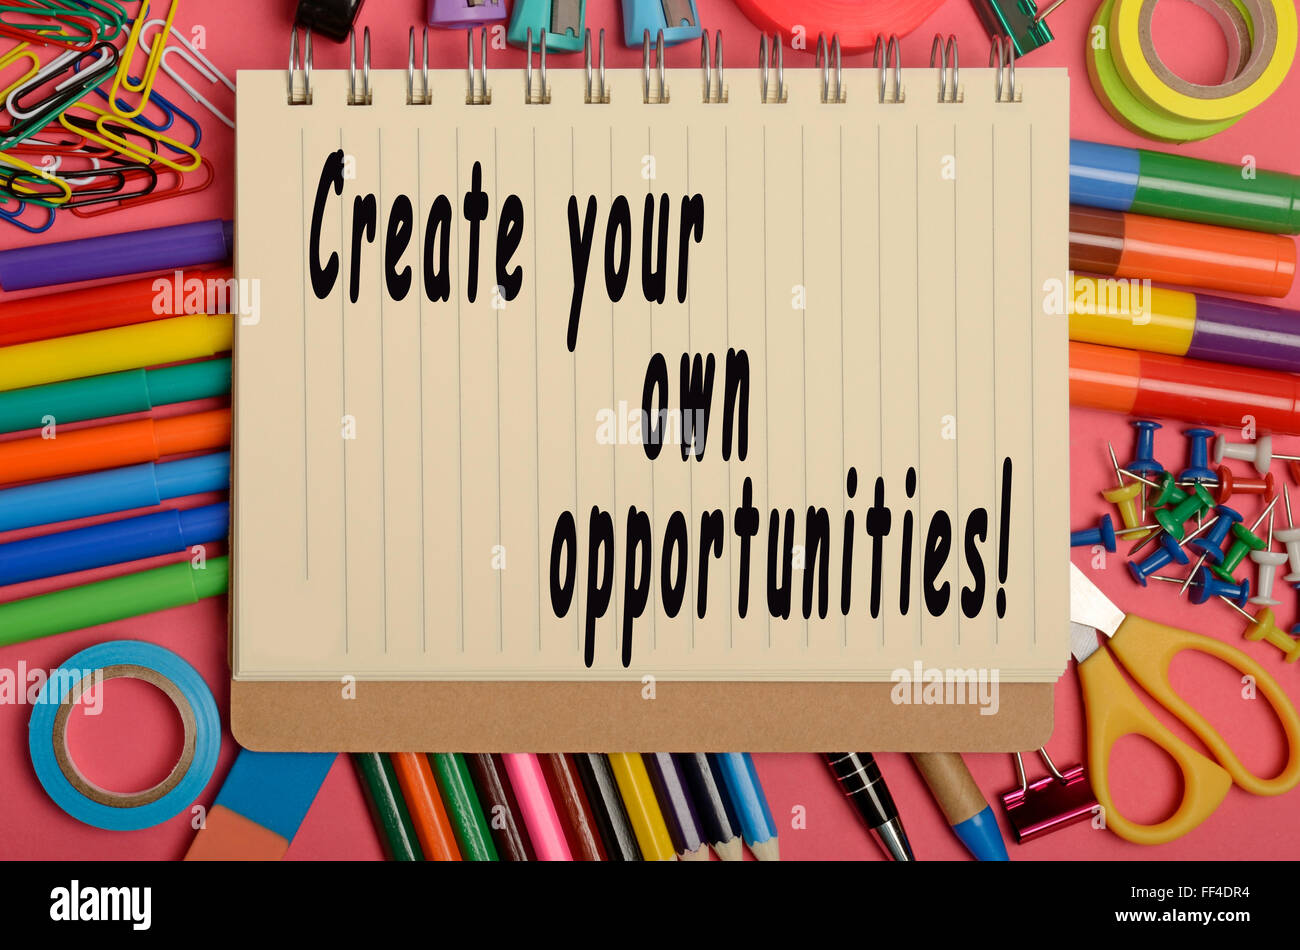 Create your own opportunities written on notebook - Stock Image